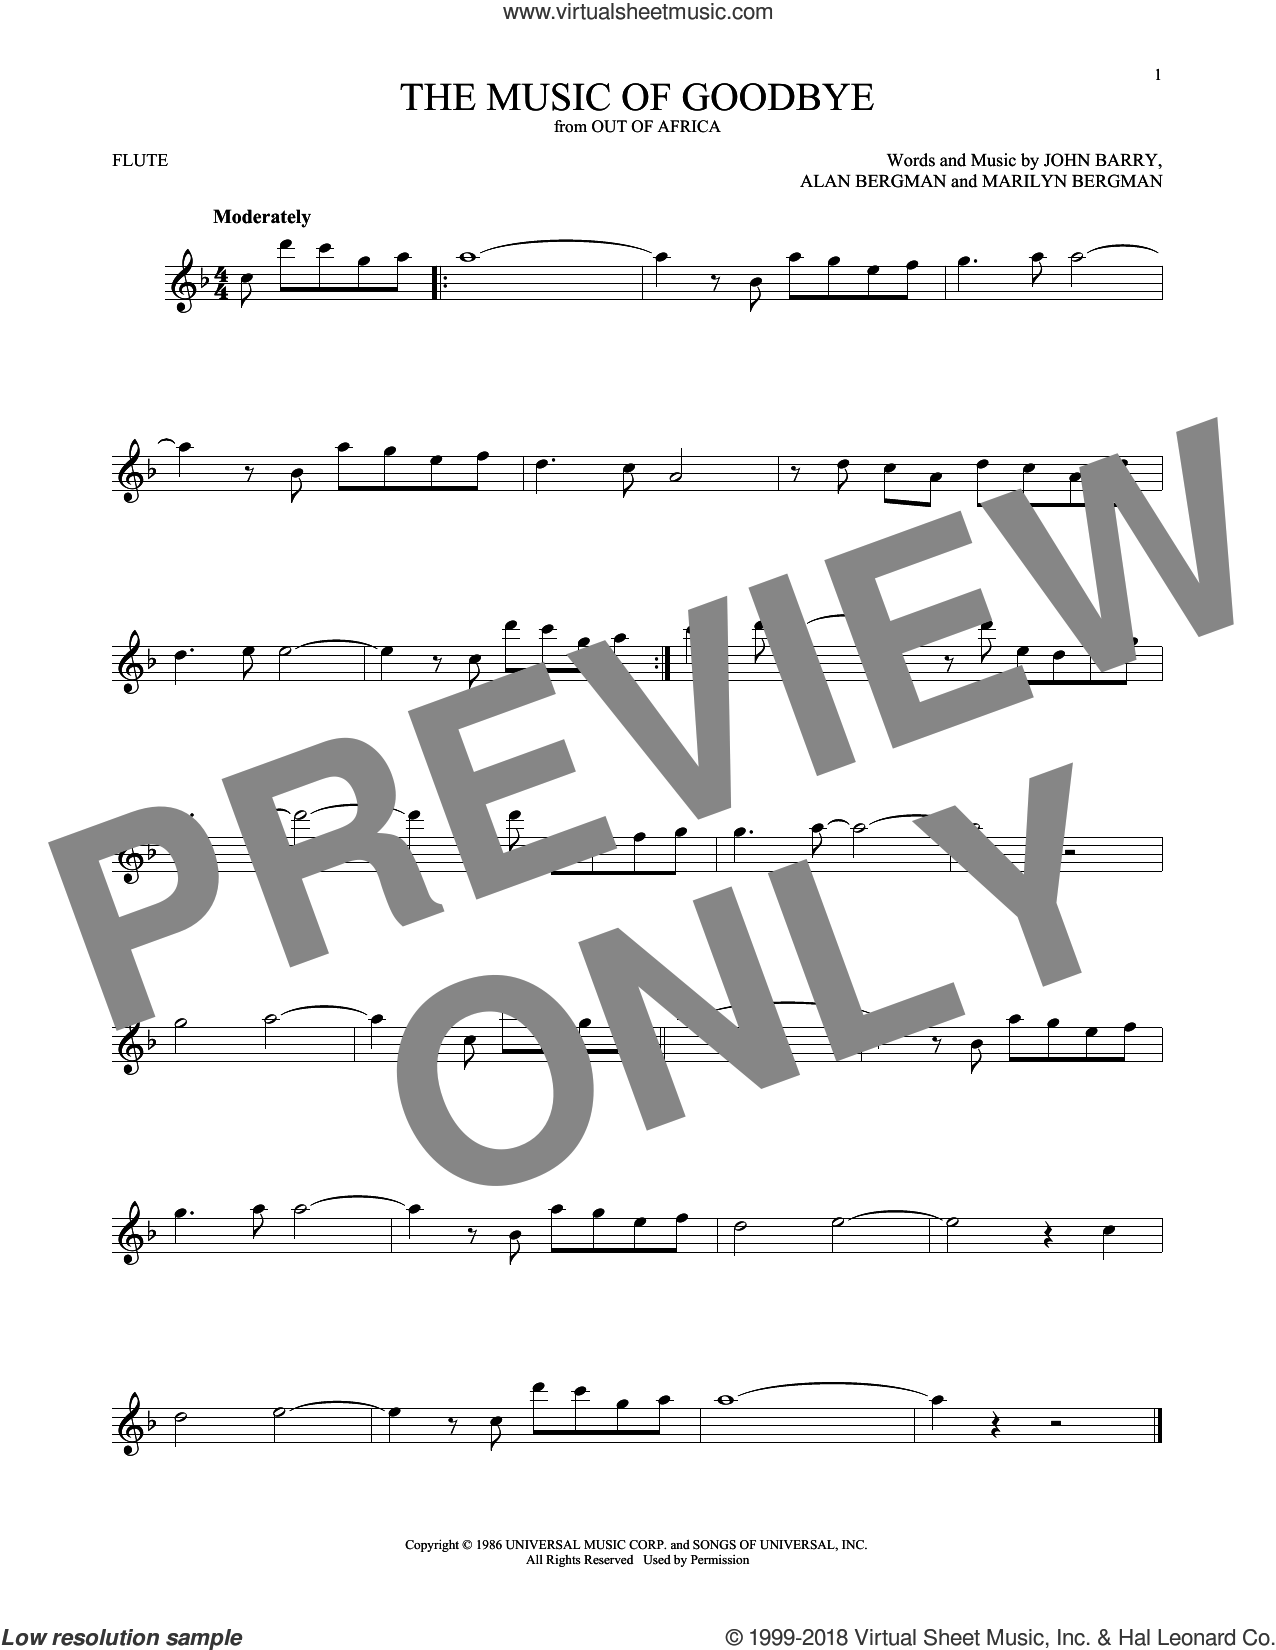 The Music Of Goodbye sheet music for flute solo by John Barry, Alan Bergman and Marilyn Bergman, intermediate